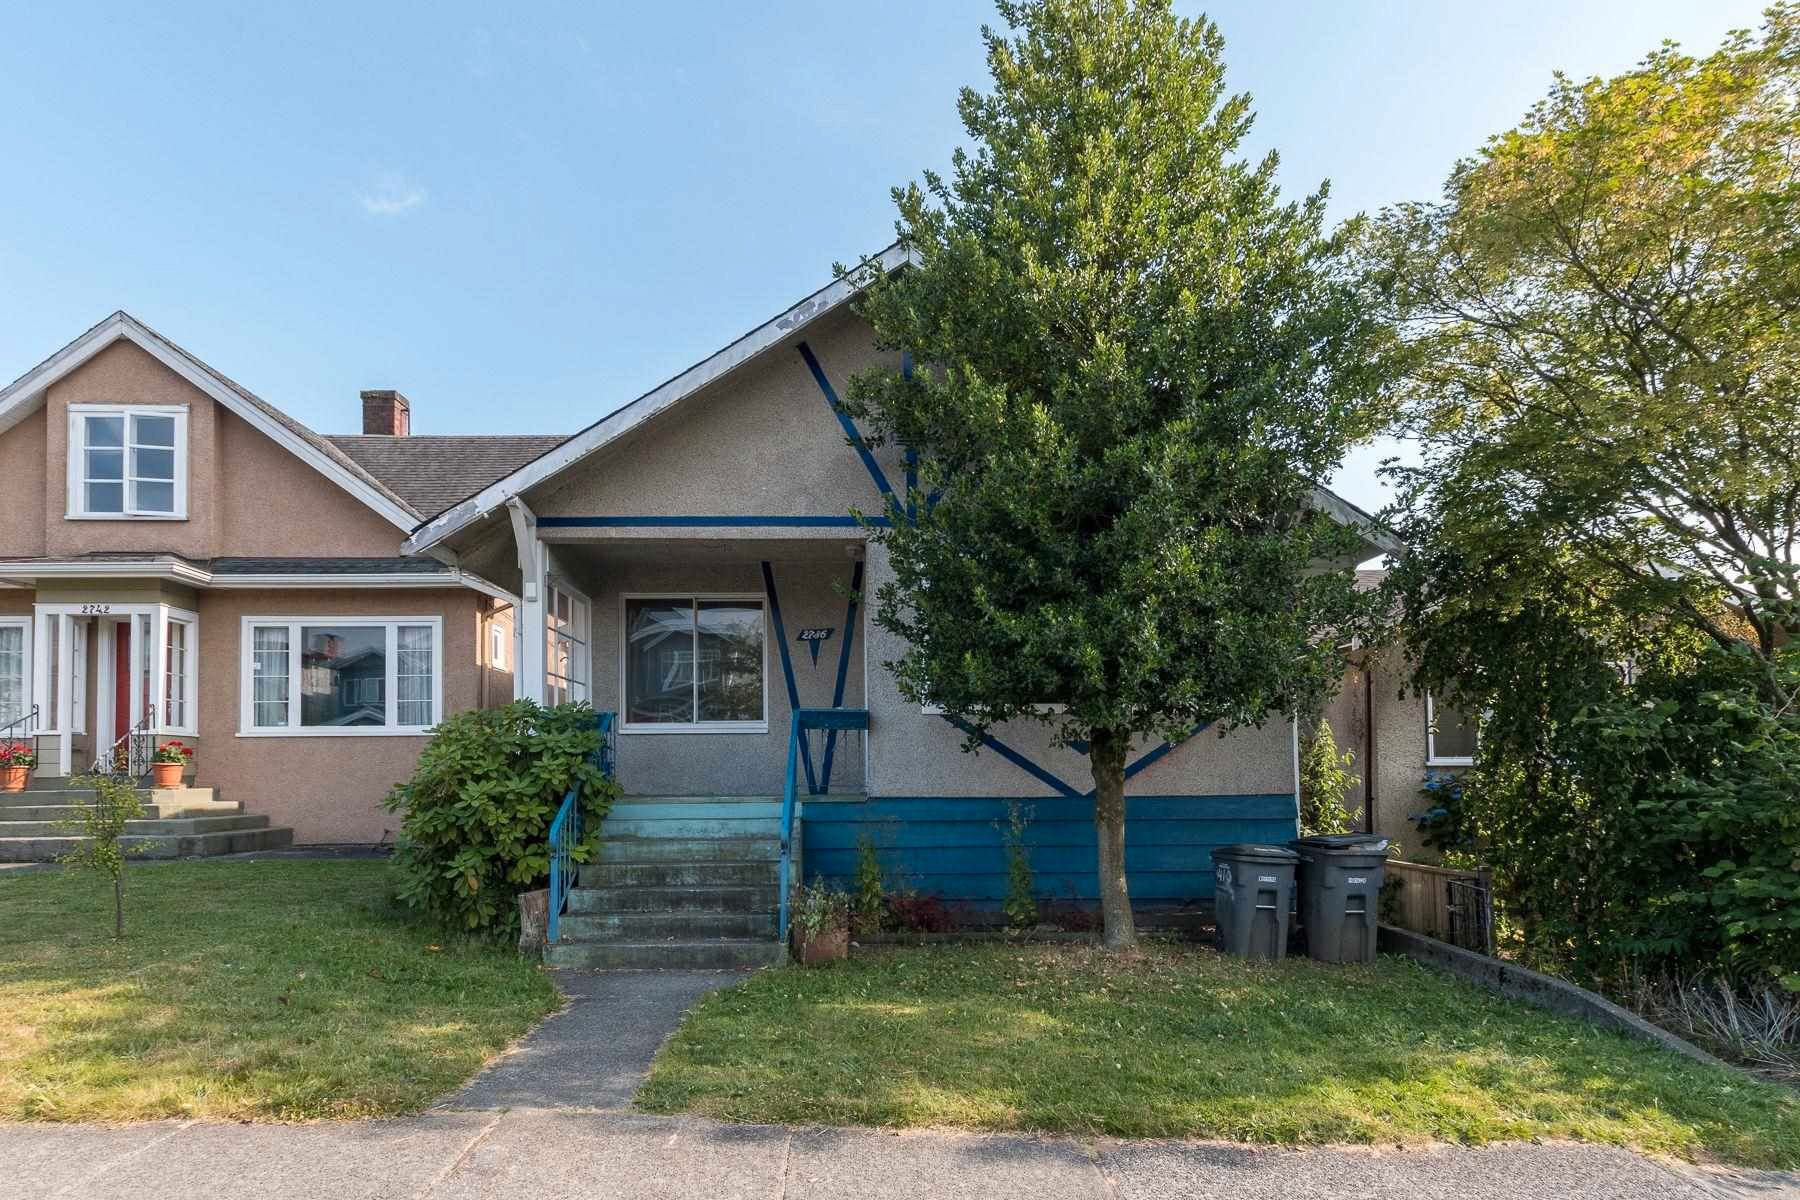 Main Photo: 2736 E GEORGIA Street in Vancouver: Renfrew VE House for sale (Vancouver East)  : MLS®# R2599667